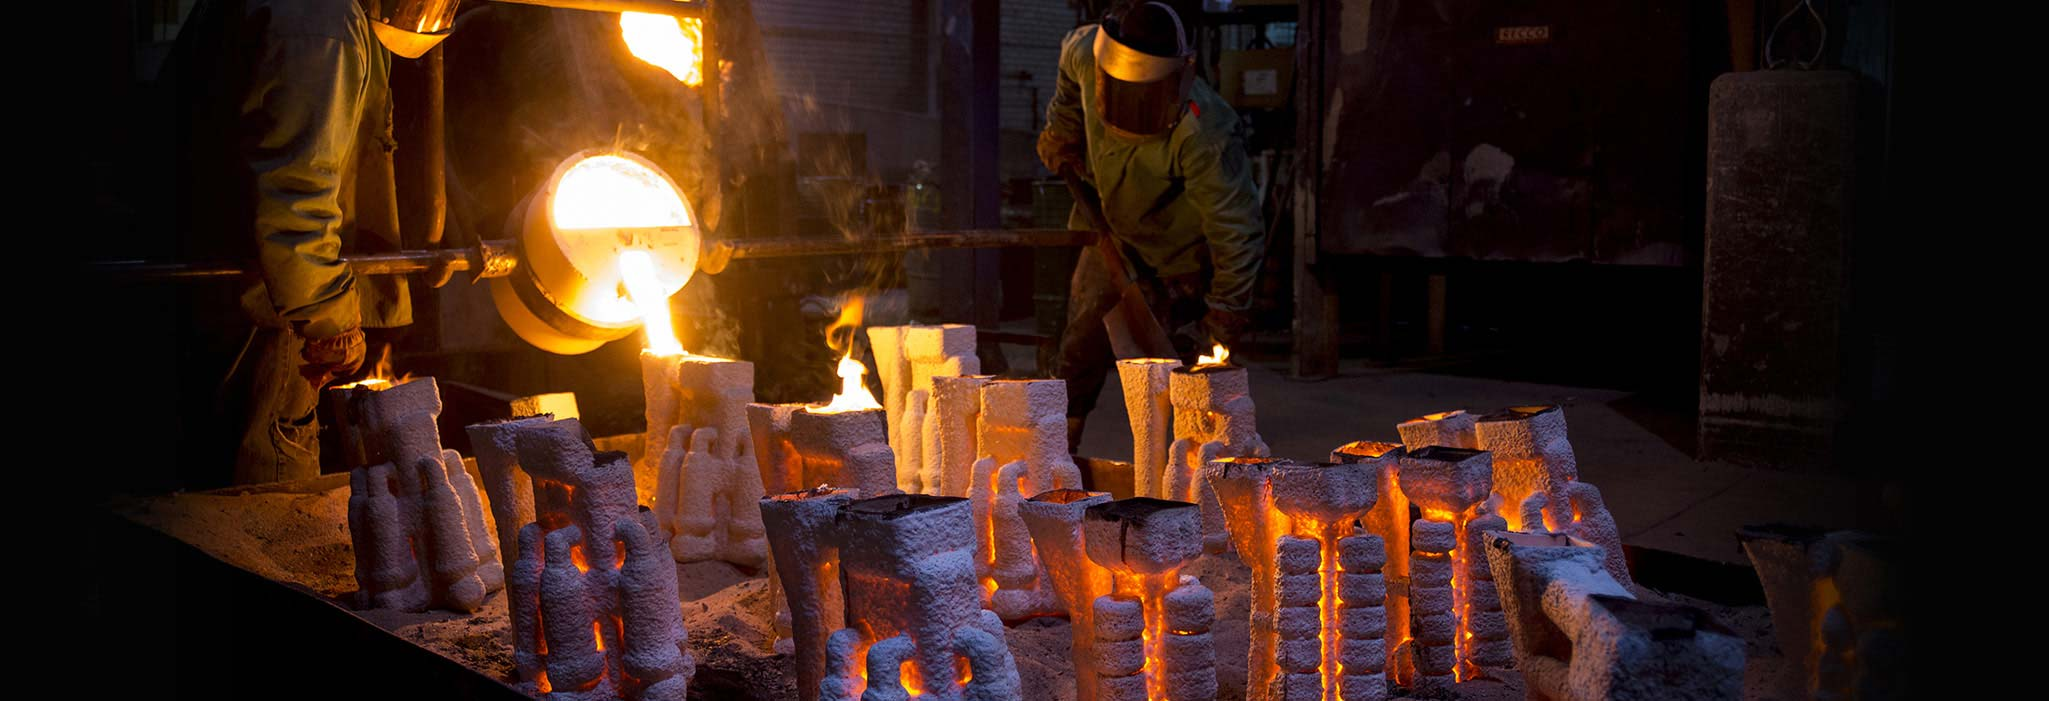 workers pouring molten alloy into ceramic molds for investment cast parts